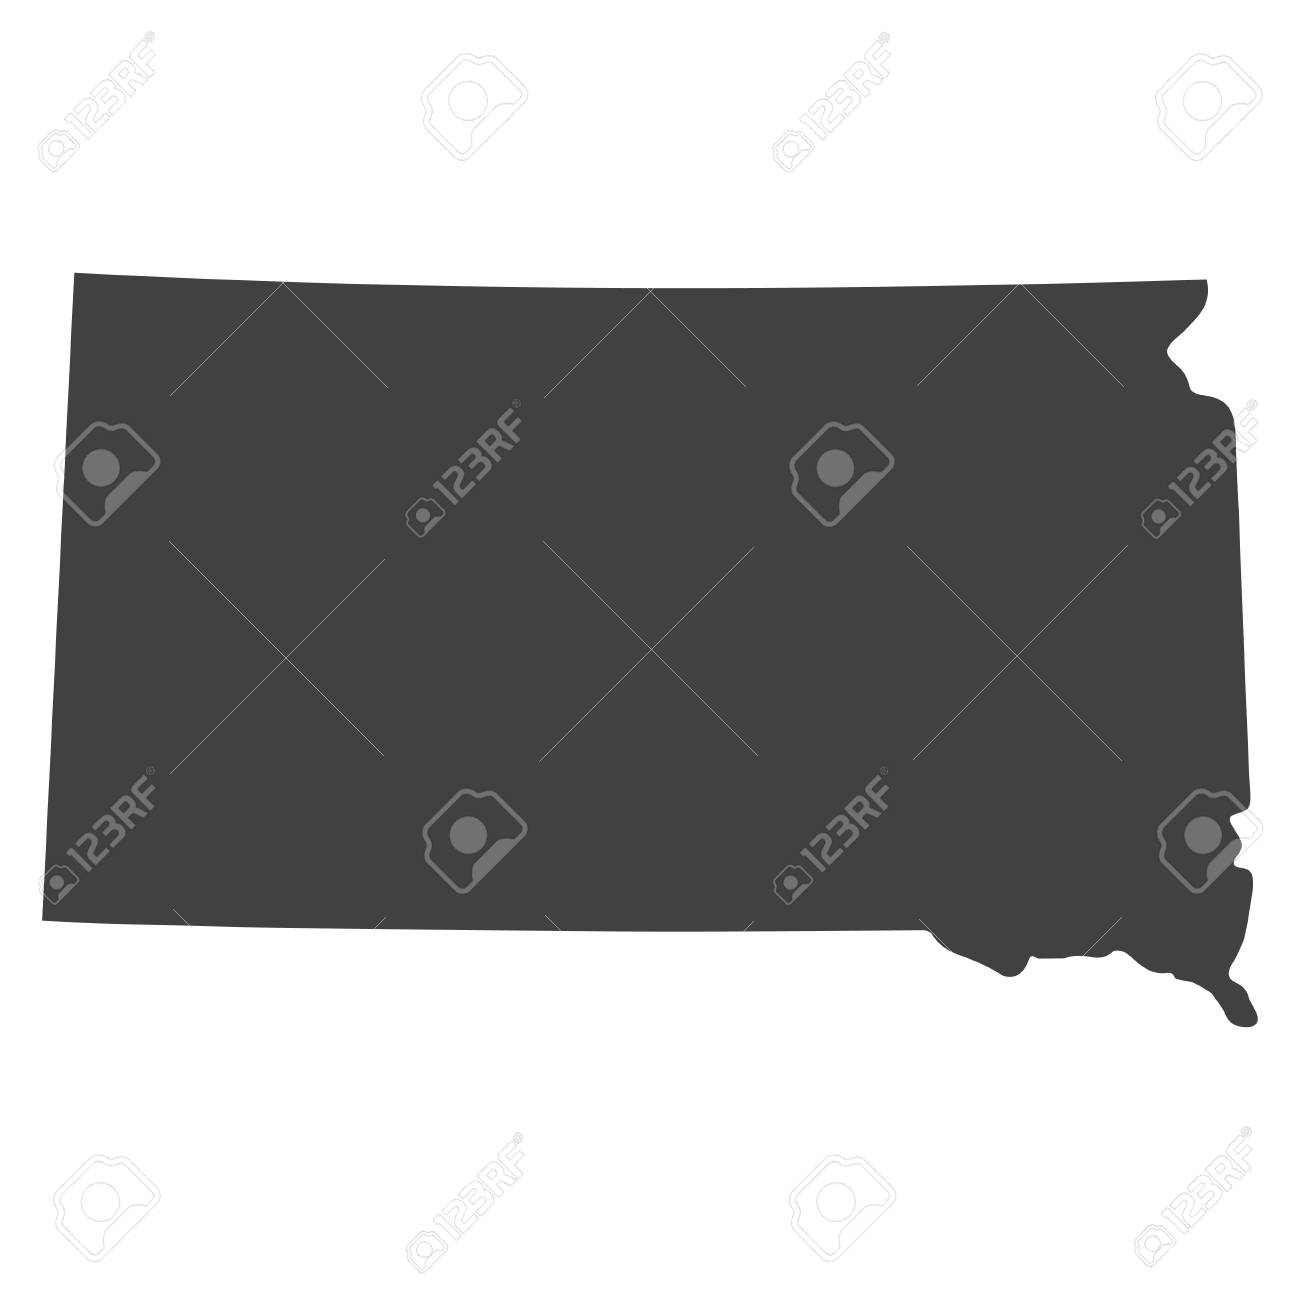 South Dakota State Map In Black On A White Background Vector